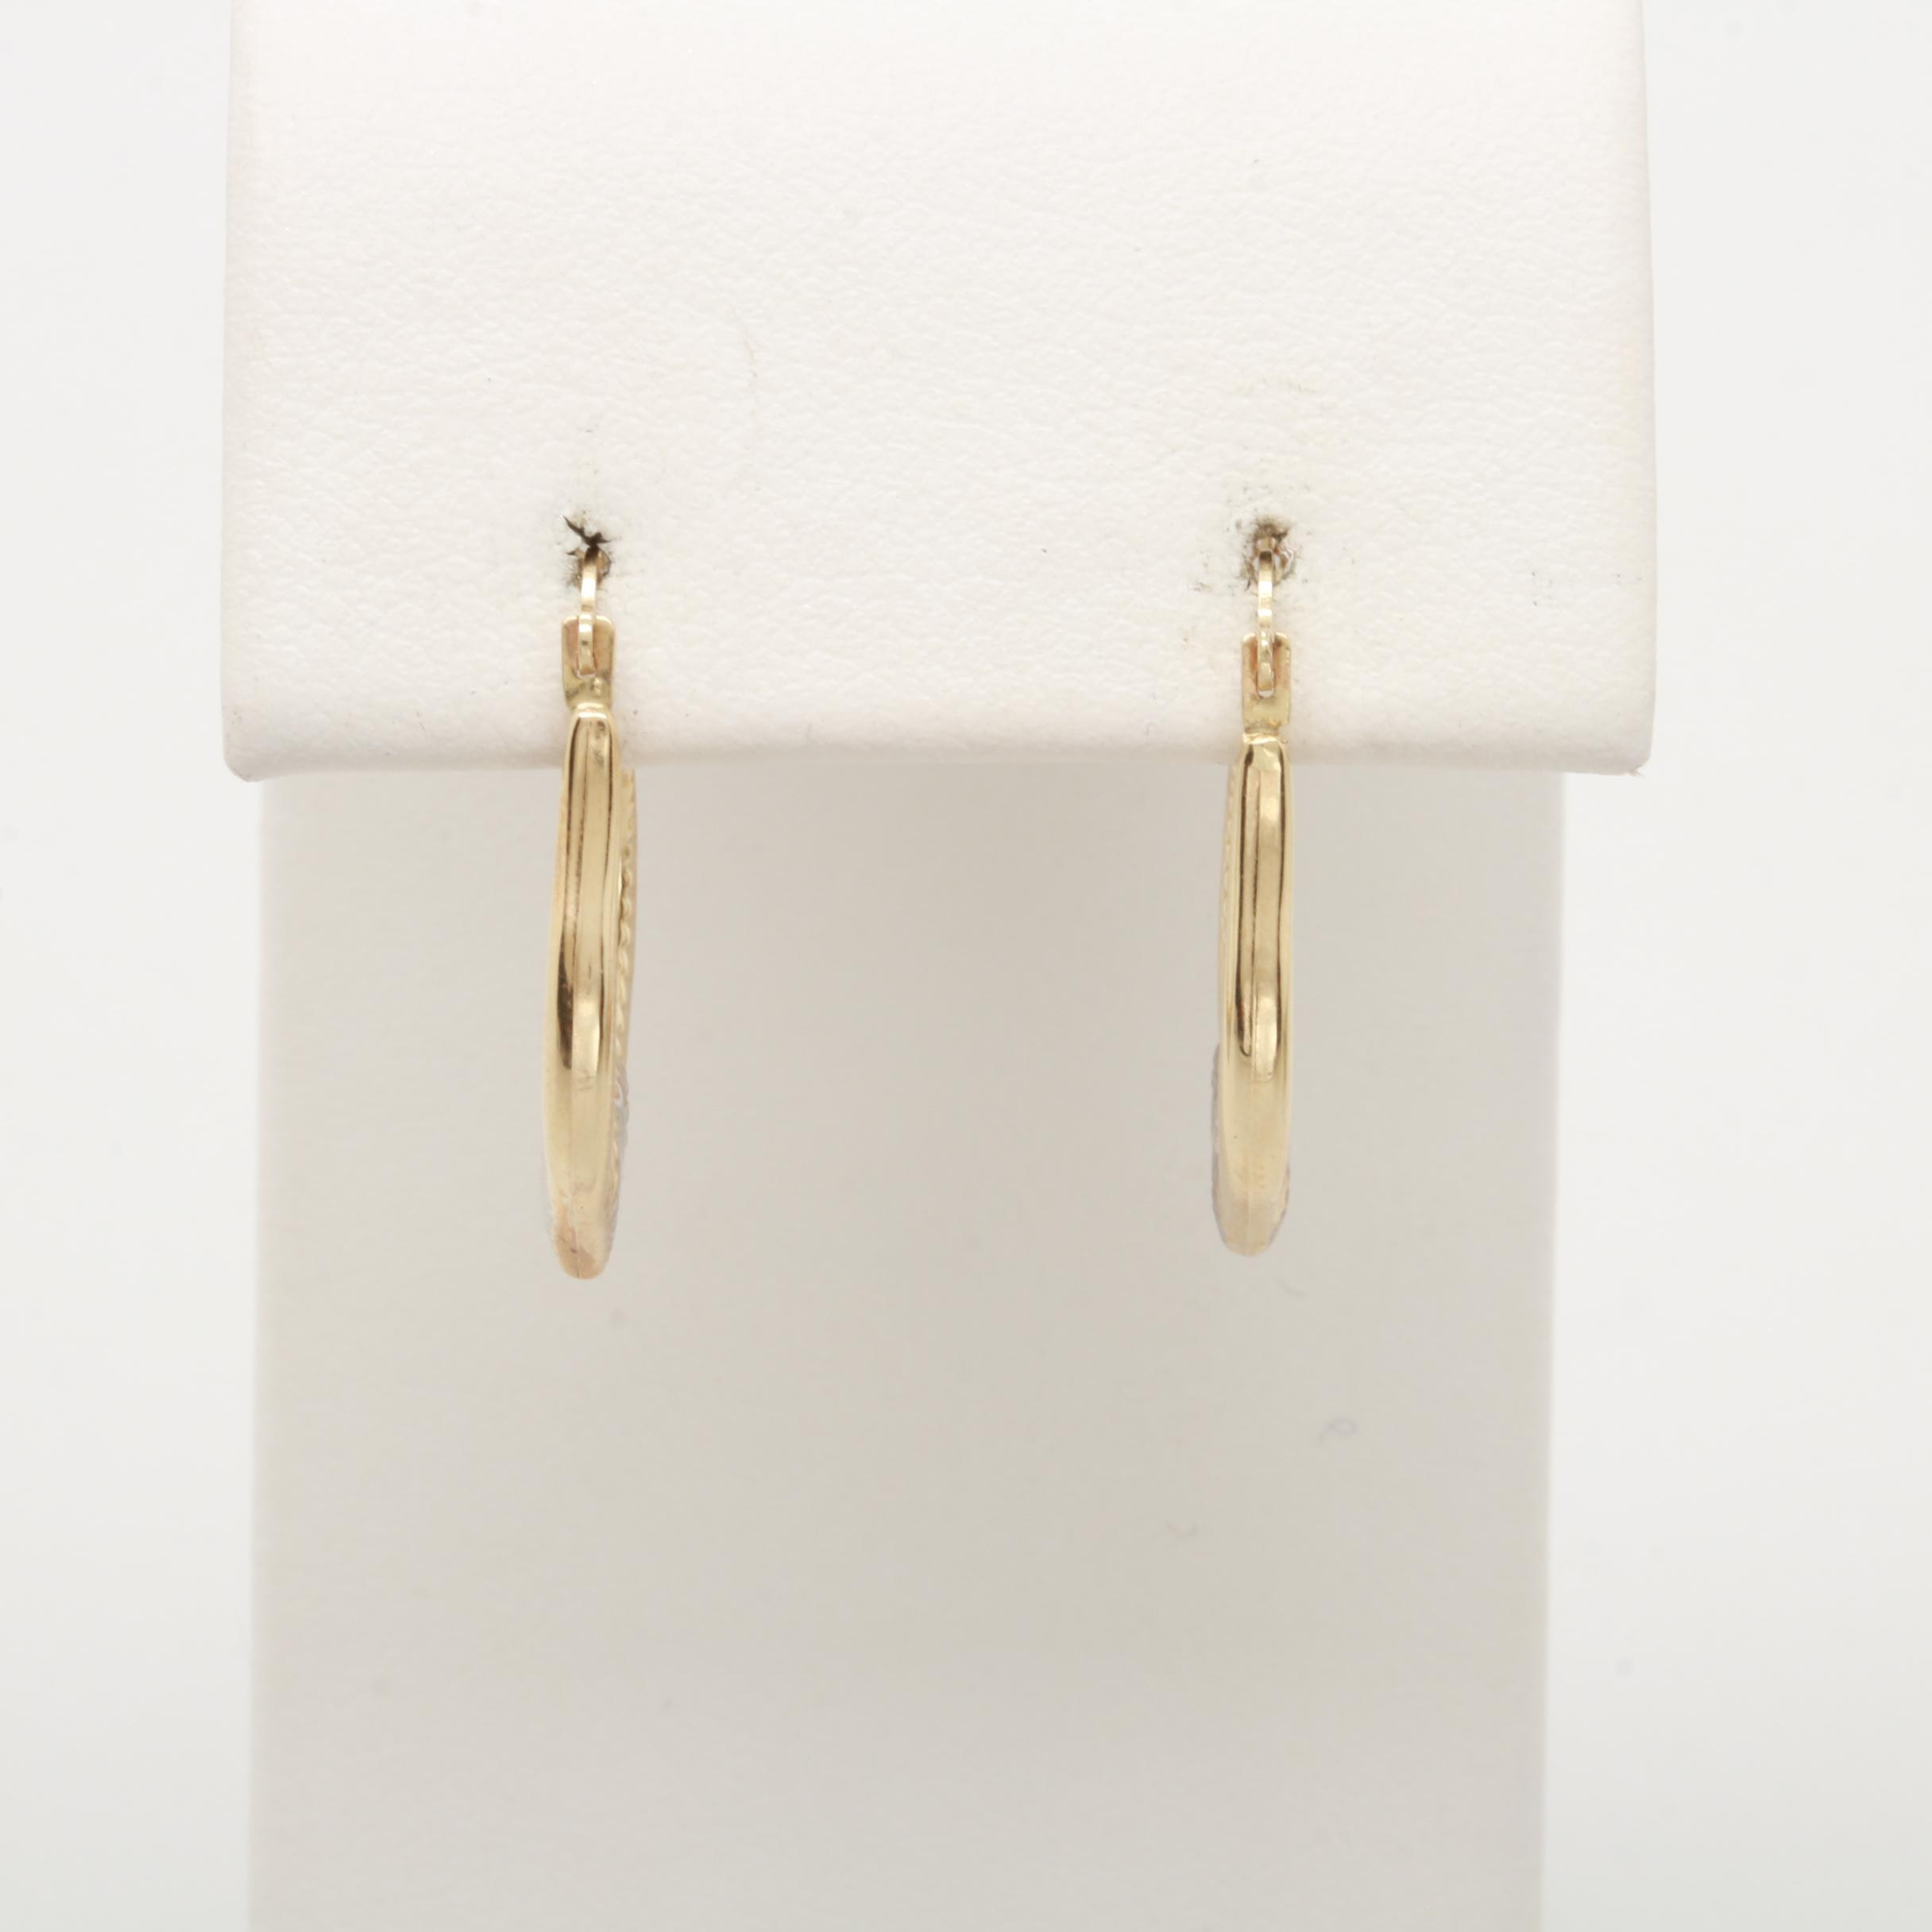 14K Yellow Gold Earrings with White Gold Accents